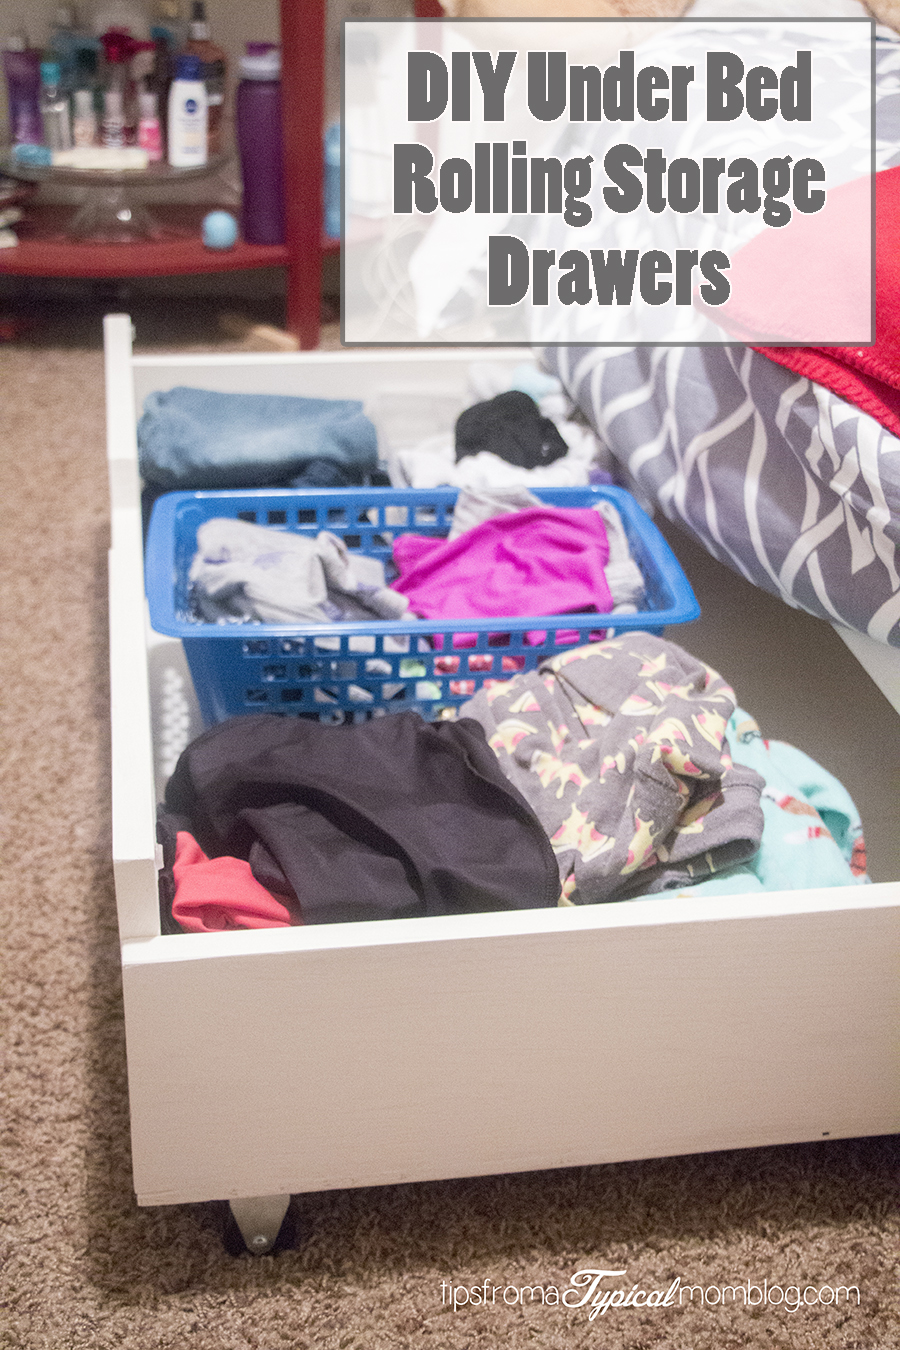 Diy Under Bed Rolling Storage Drawers Tutorial Tips From A